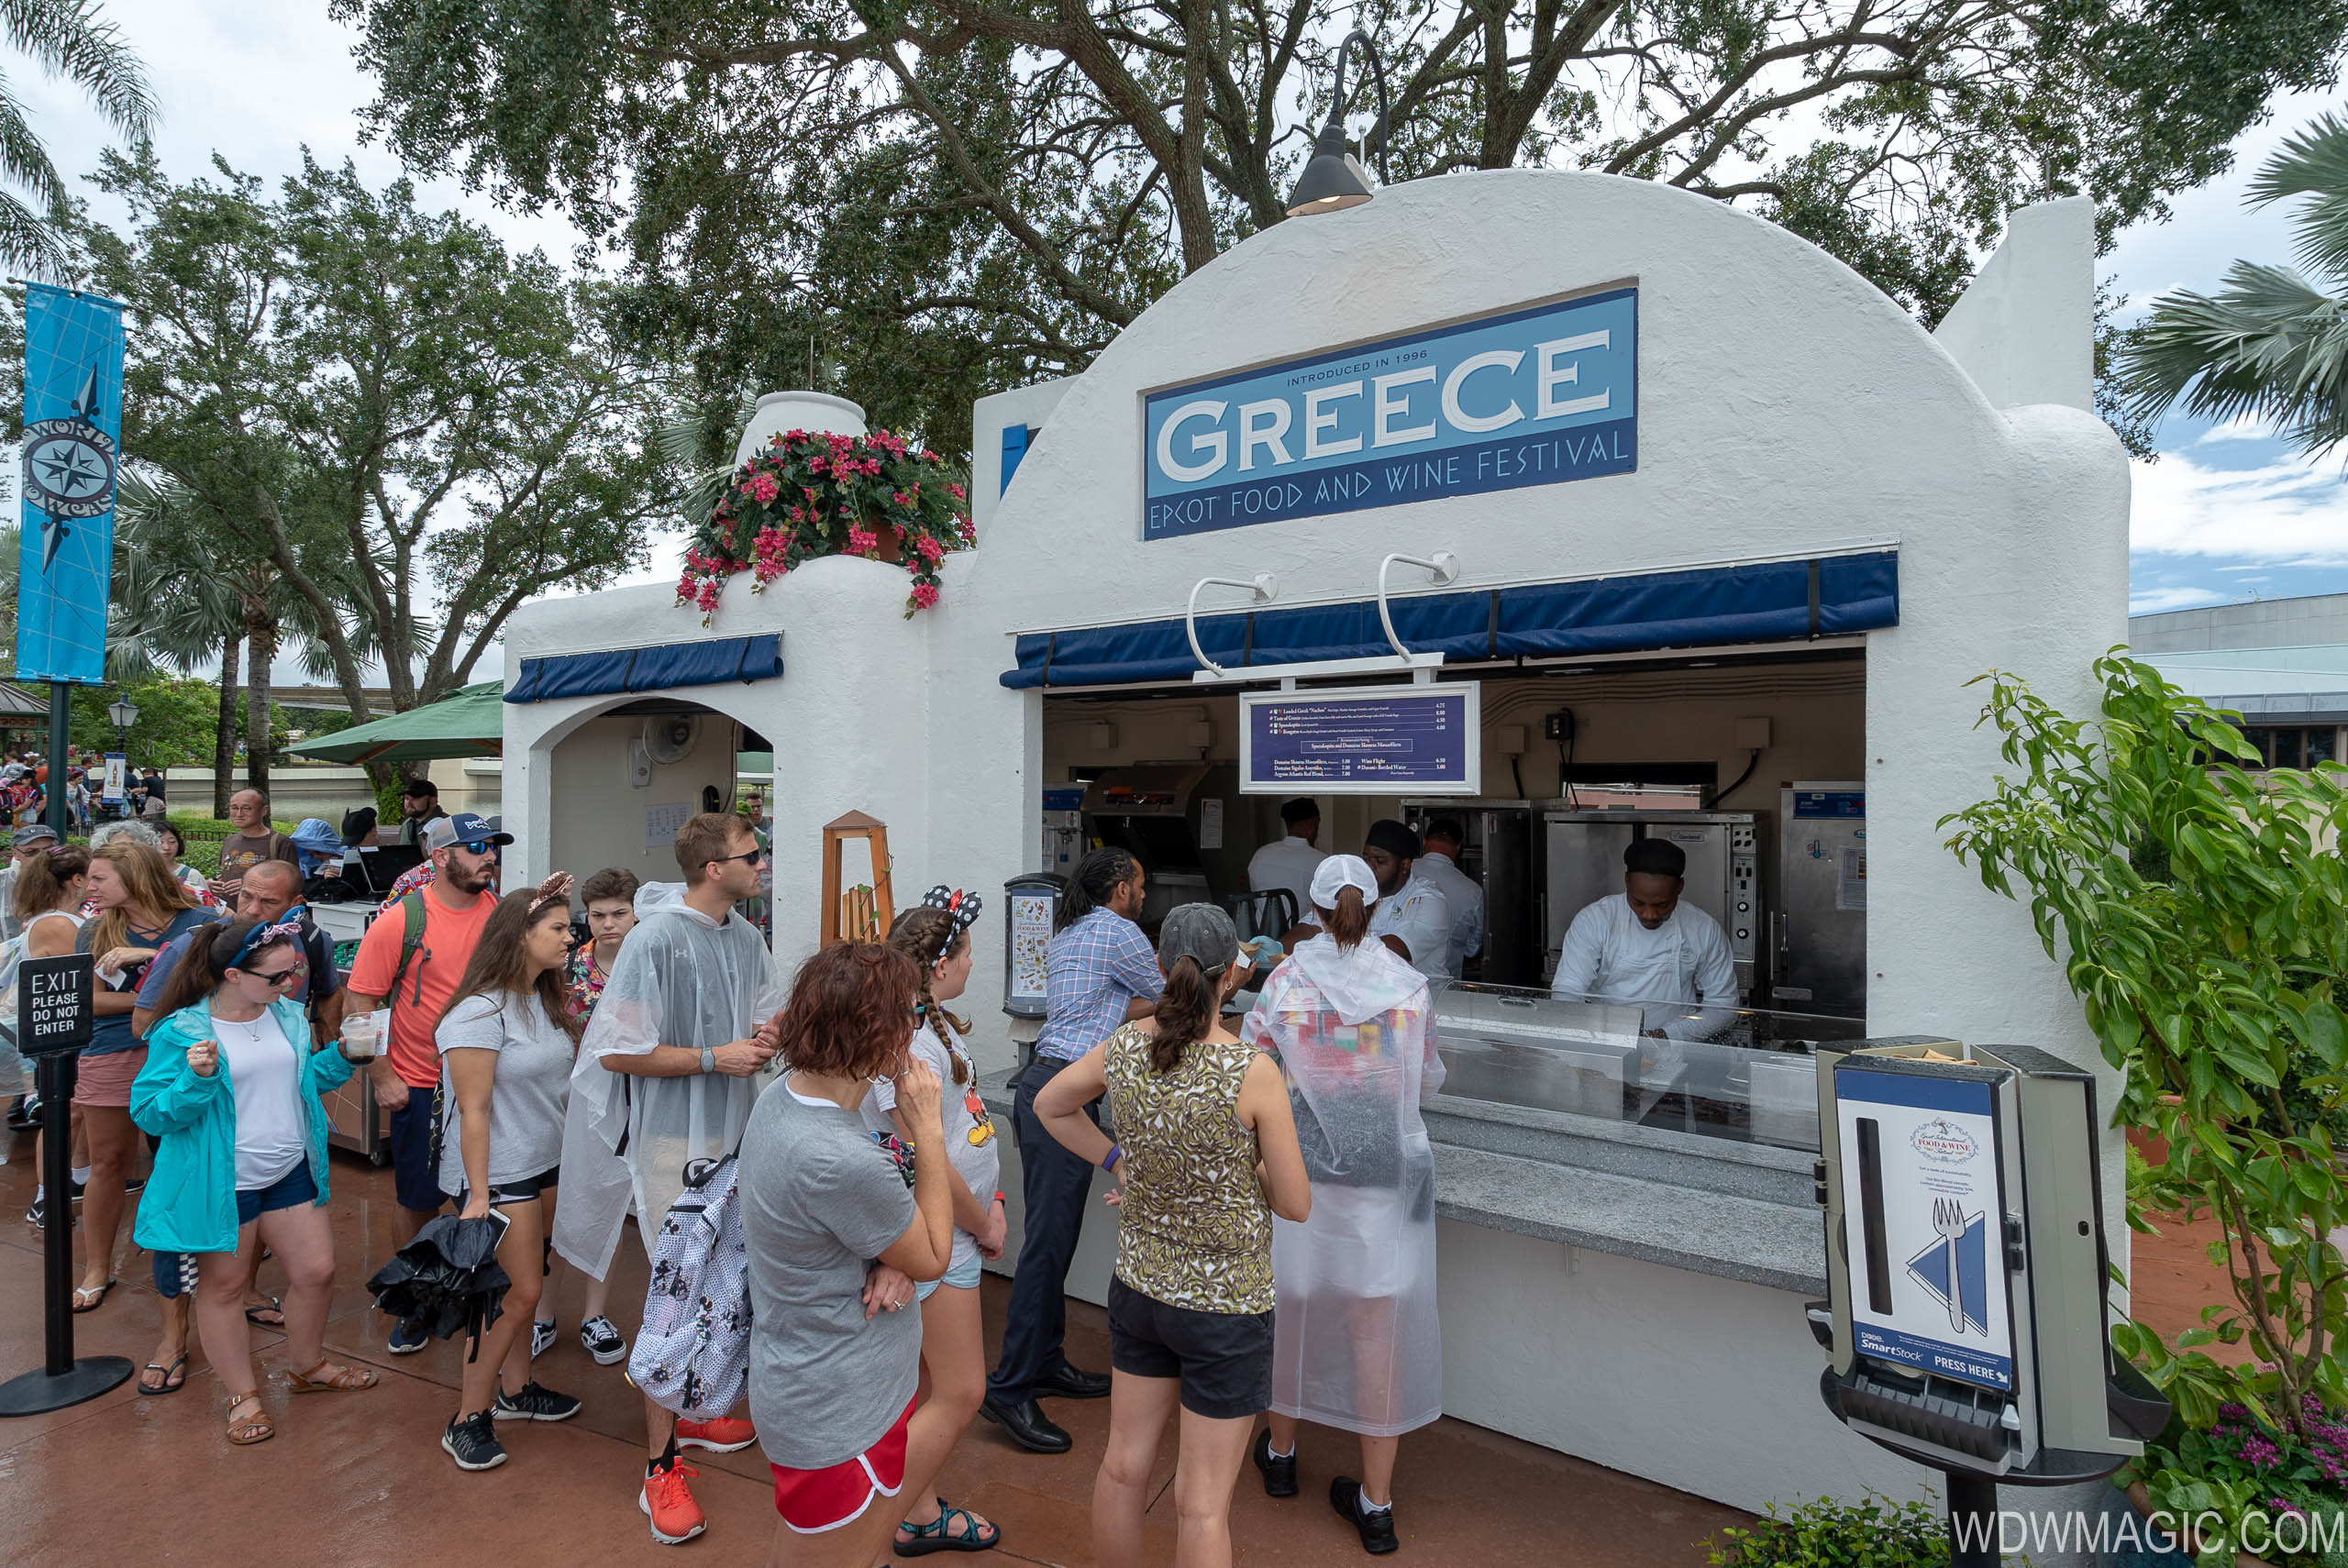 2018 Epcot Food and Wine Festival Marketplace kiosks, menus and pricing